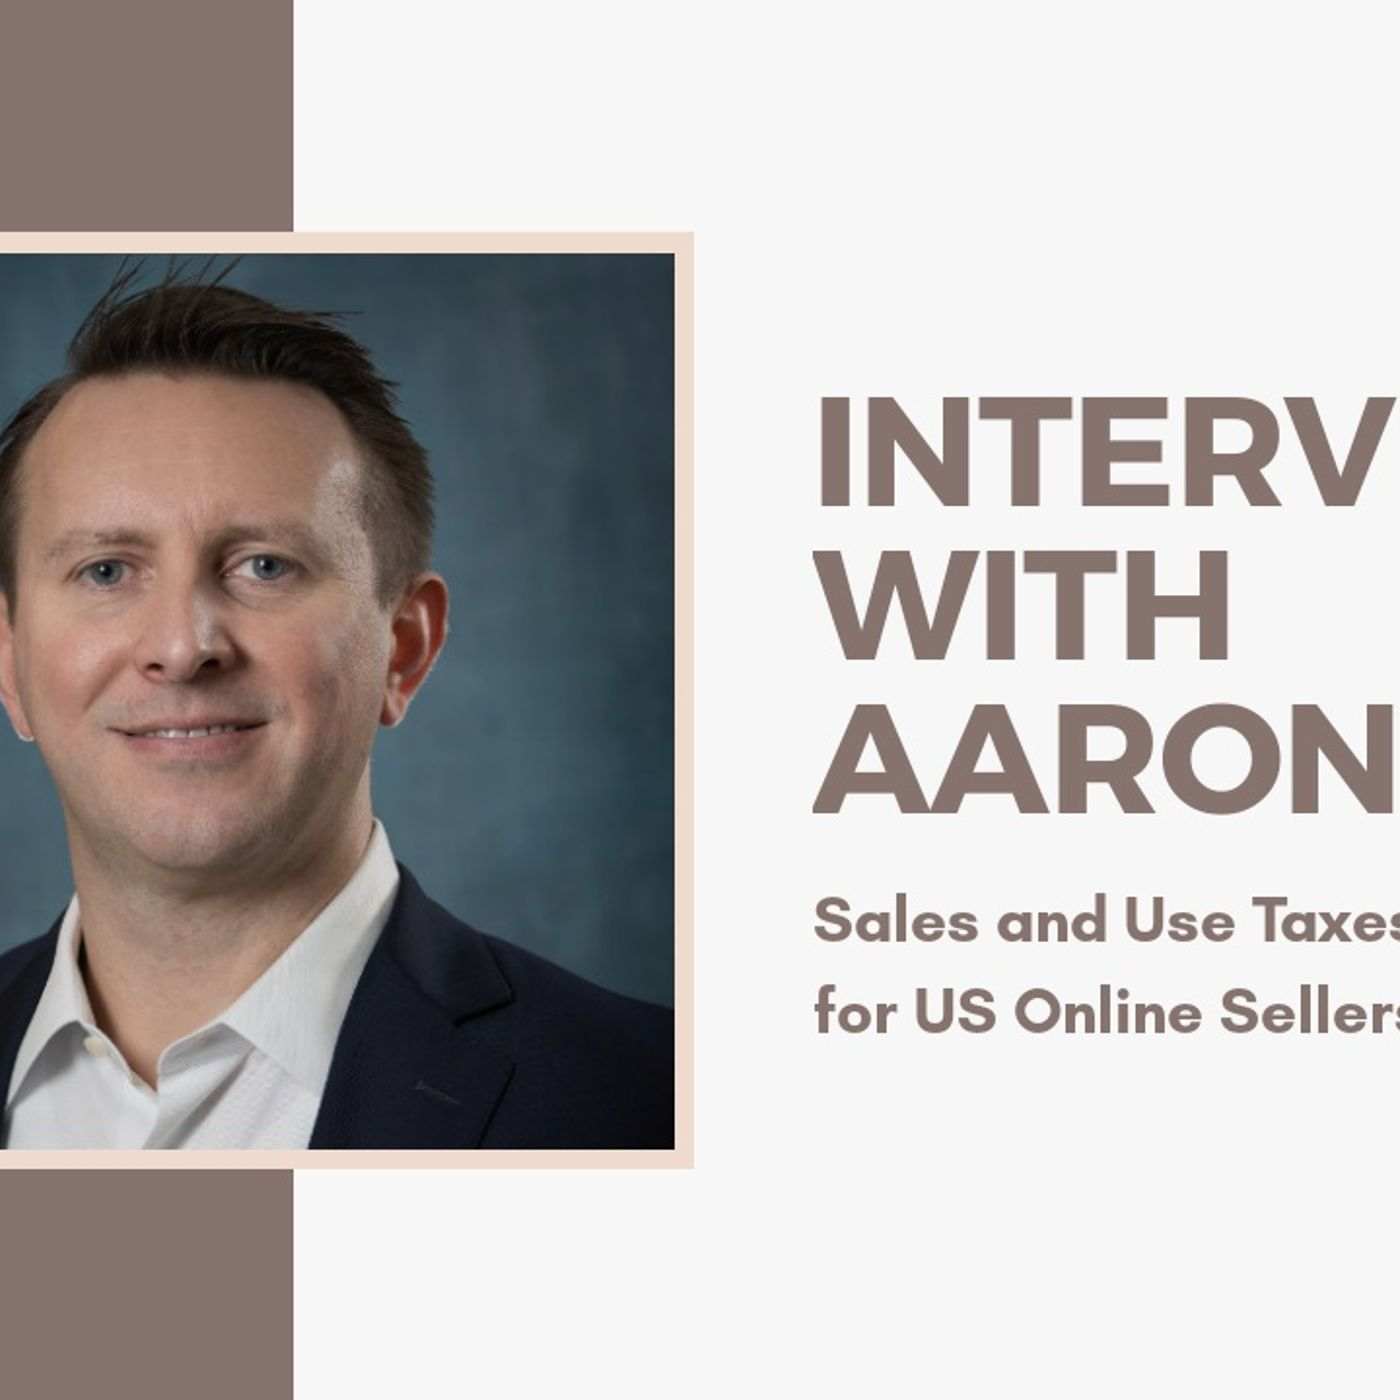 [ HTJ Podcast ] Interview with Aaron Giles - Sales and Use Taxes for US Online Sellers.